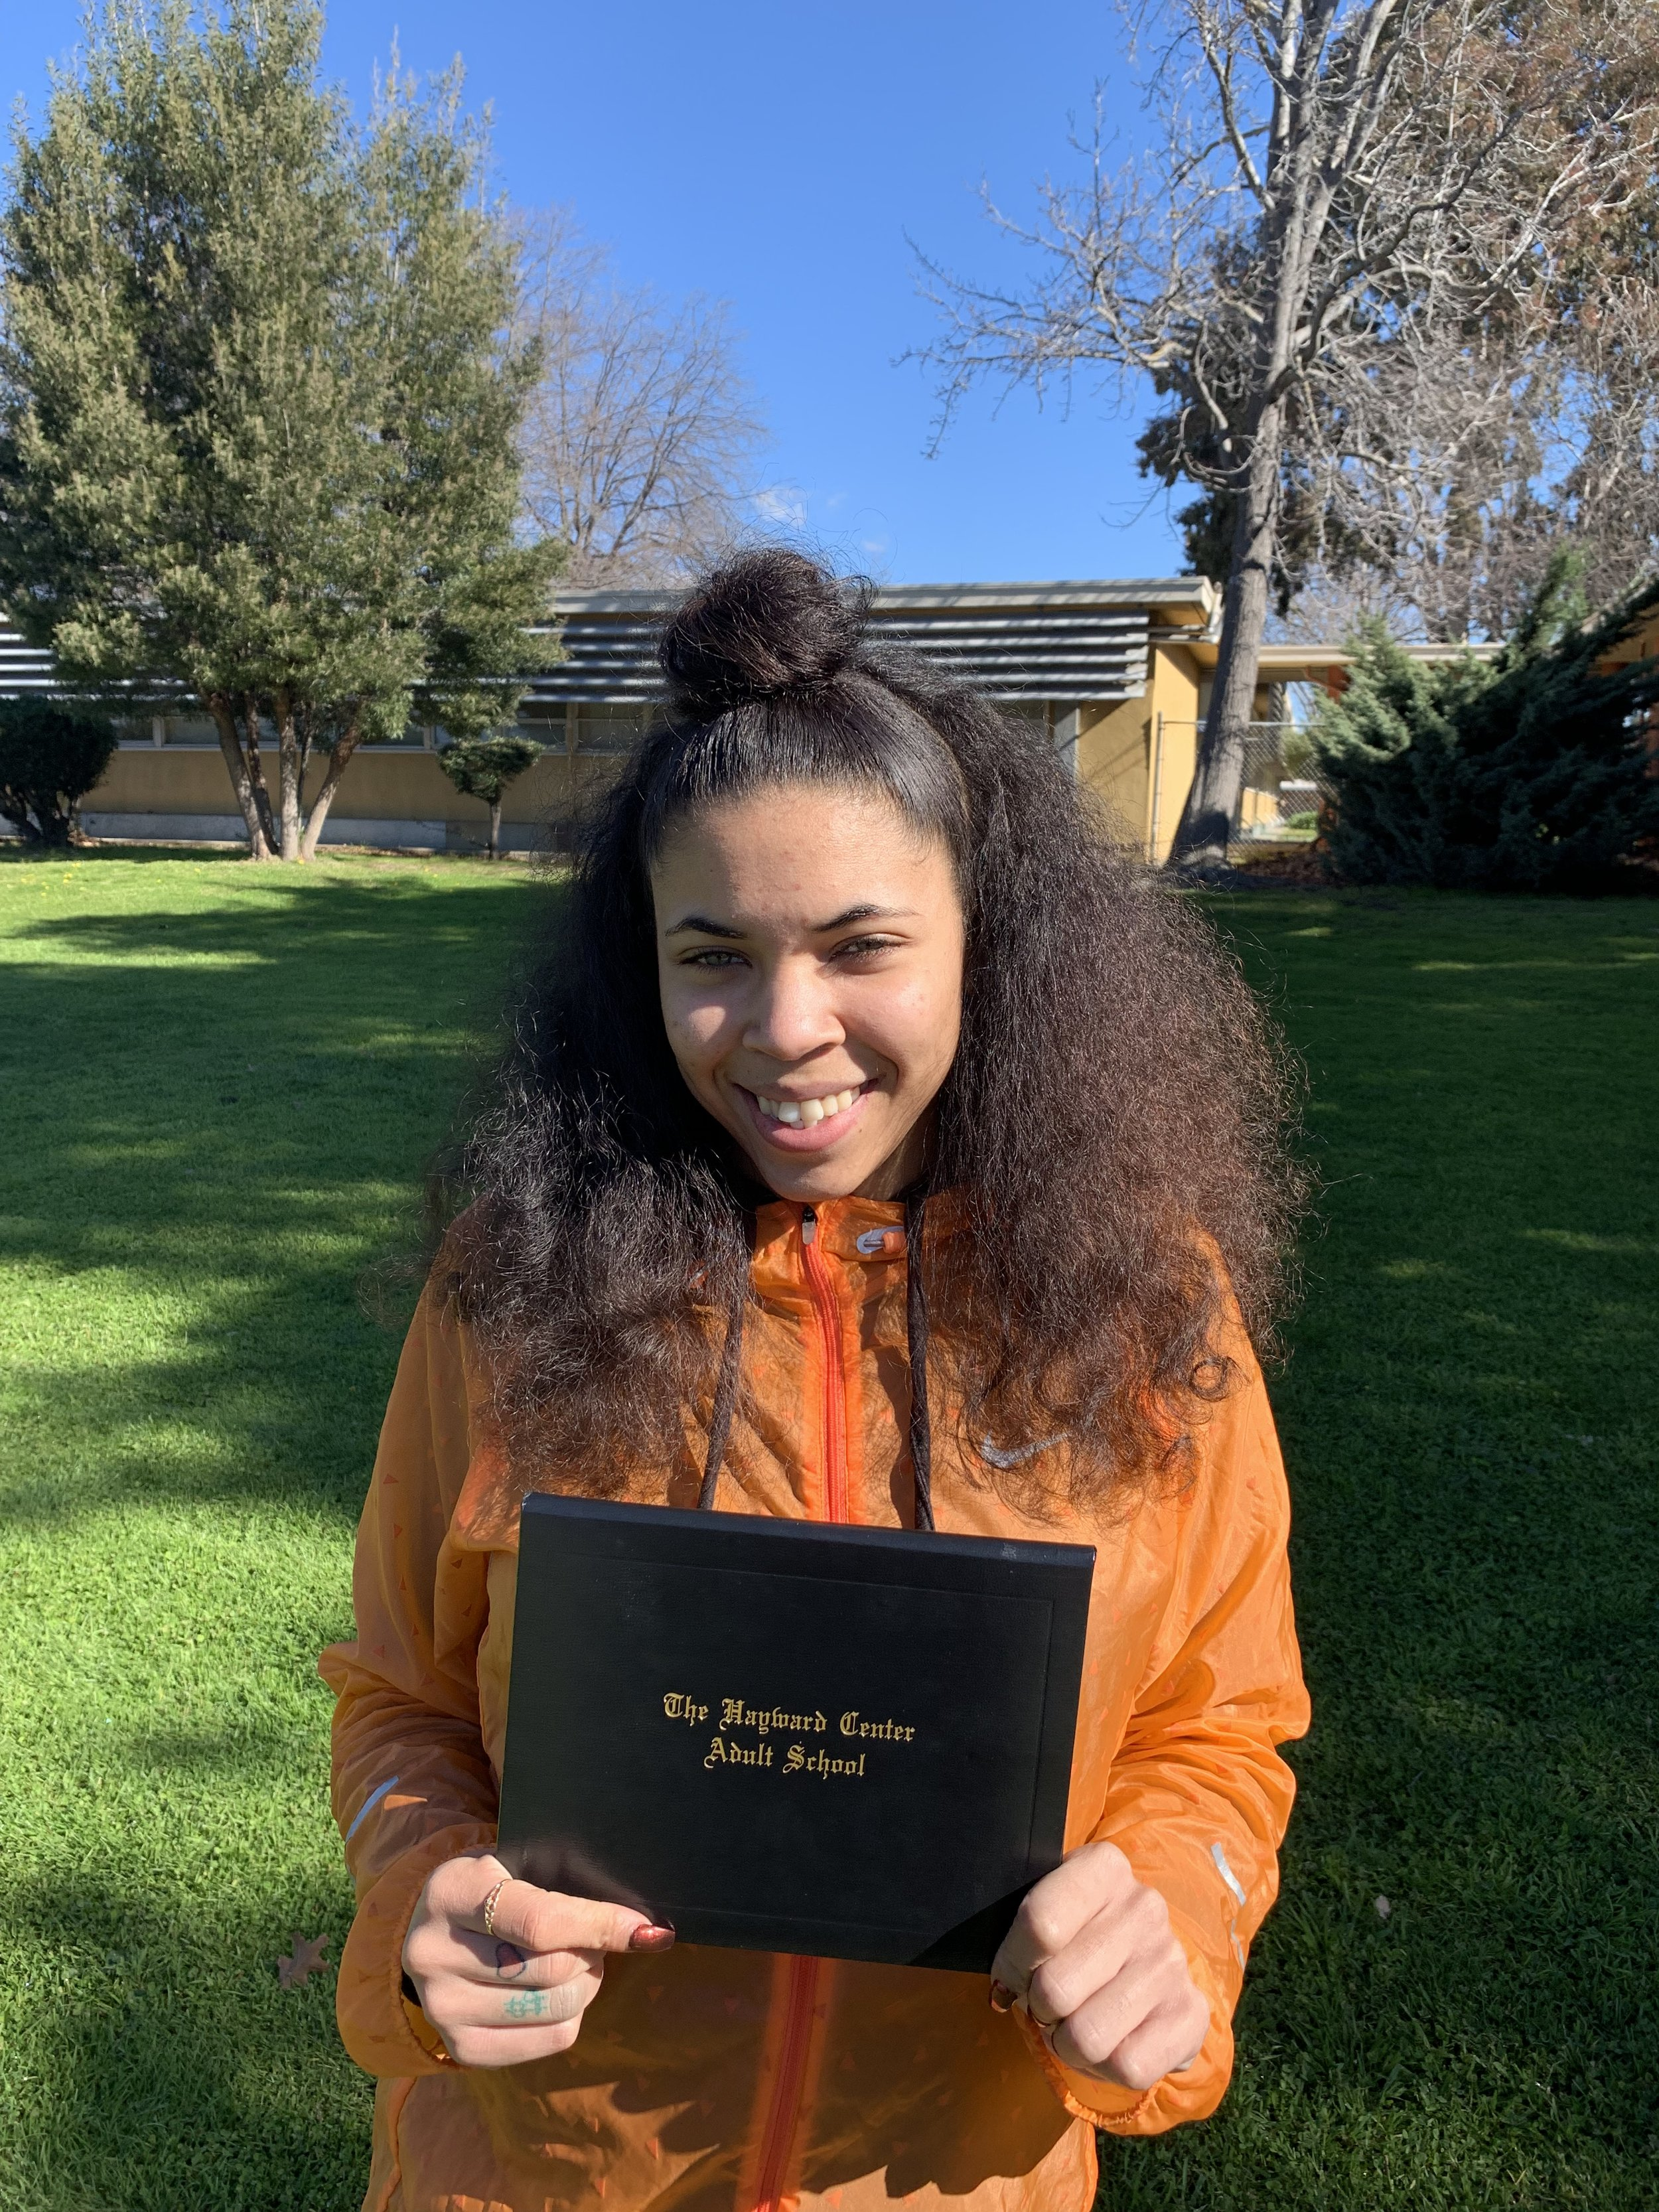 Mariah F. - Congratulations Mariah Fountain! Mariah joined Youth Enrichment Services in January 2019 with the goal of attaining her GED. She has persevered through many obstacles and has finally obtained her GED on February 20, 2019. Mariah plans to attend Chabot College this summer and study Psychology to become a Mental Health Counselor. Great job Mariah! Keep it up!